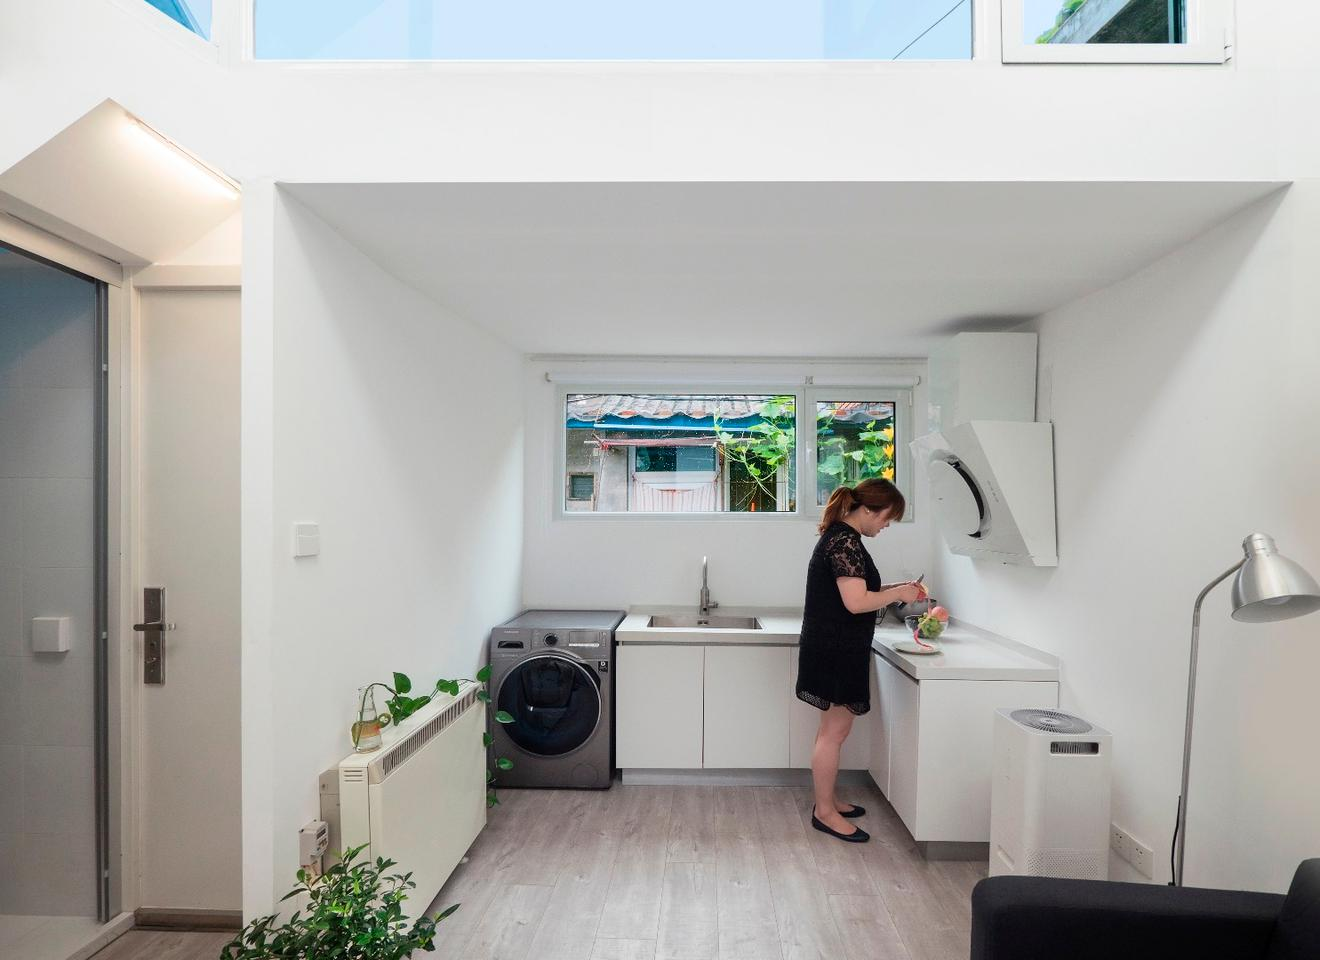 We often associate PAO with off-the-wall concepts like the ventilation shaft housing and tricycle RV, but it also has a more practical side, as shown byMrs. Fan's Plugin House